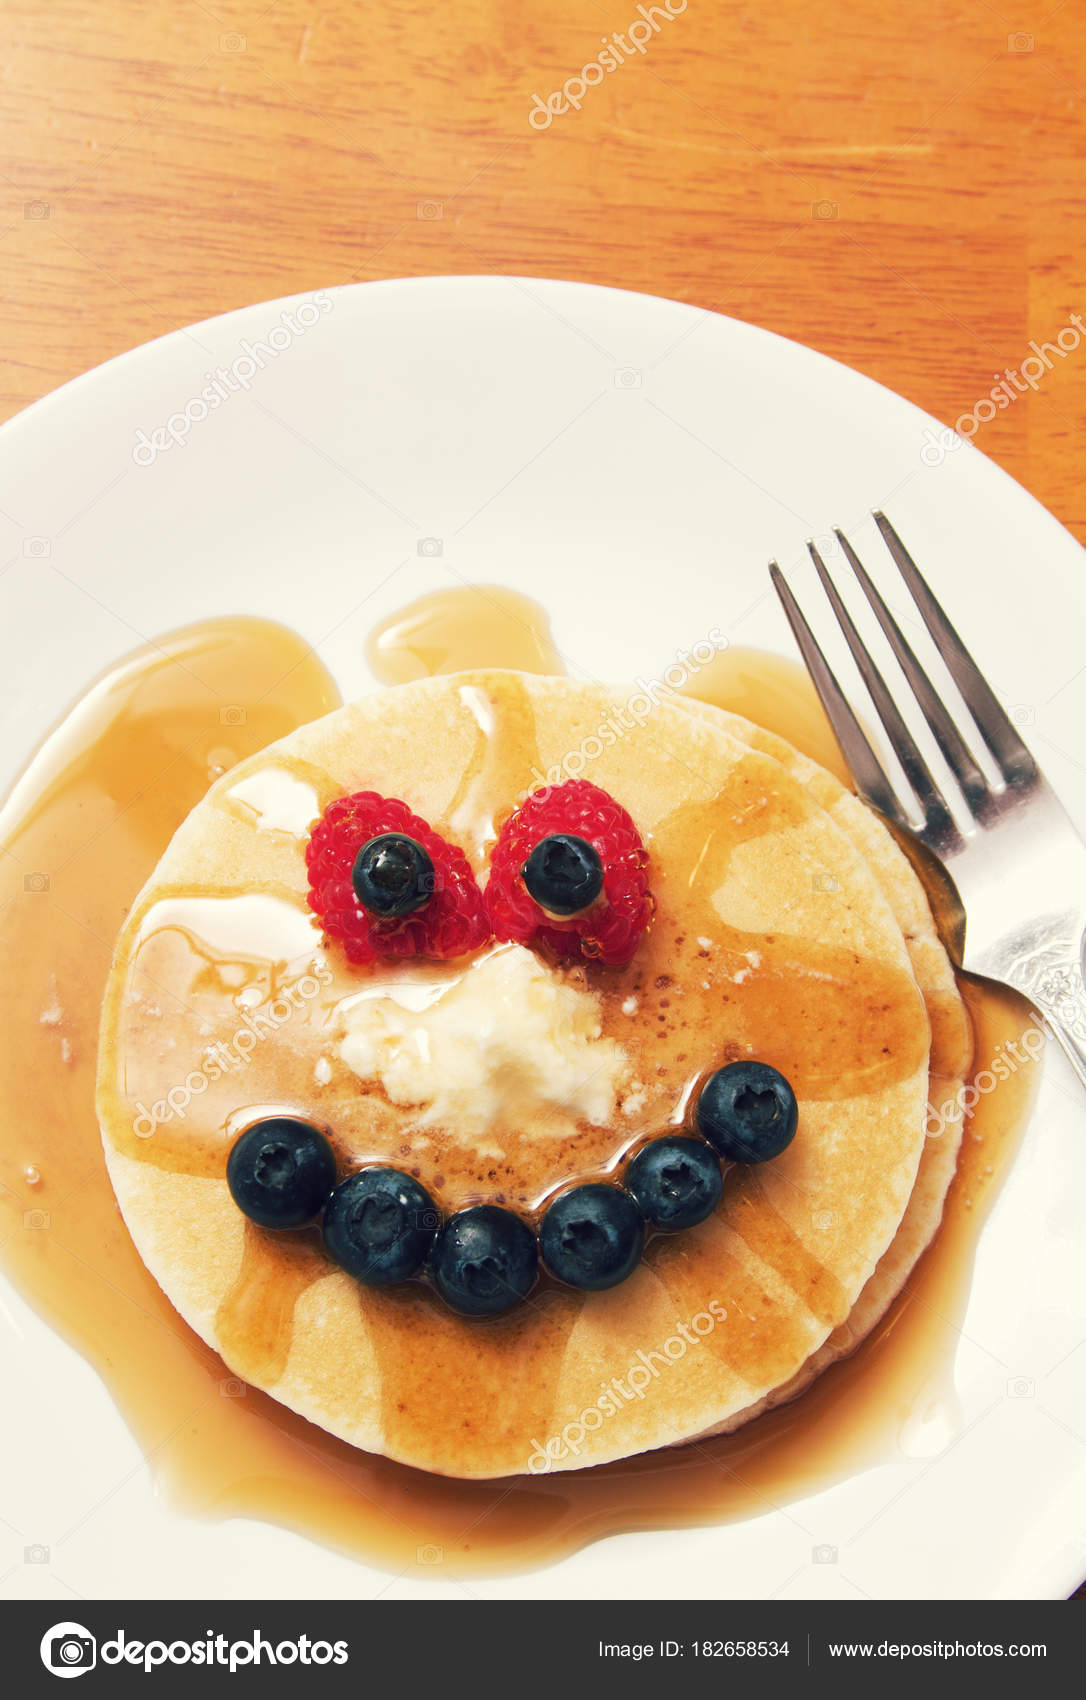 A Pancake Breakfast Arranged To Look Like Face Stock Image